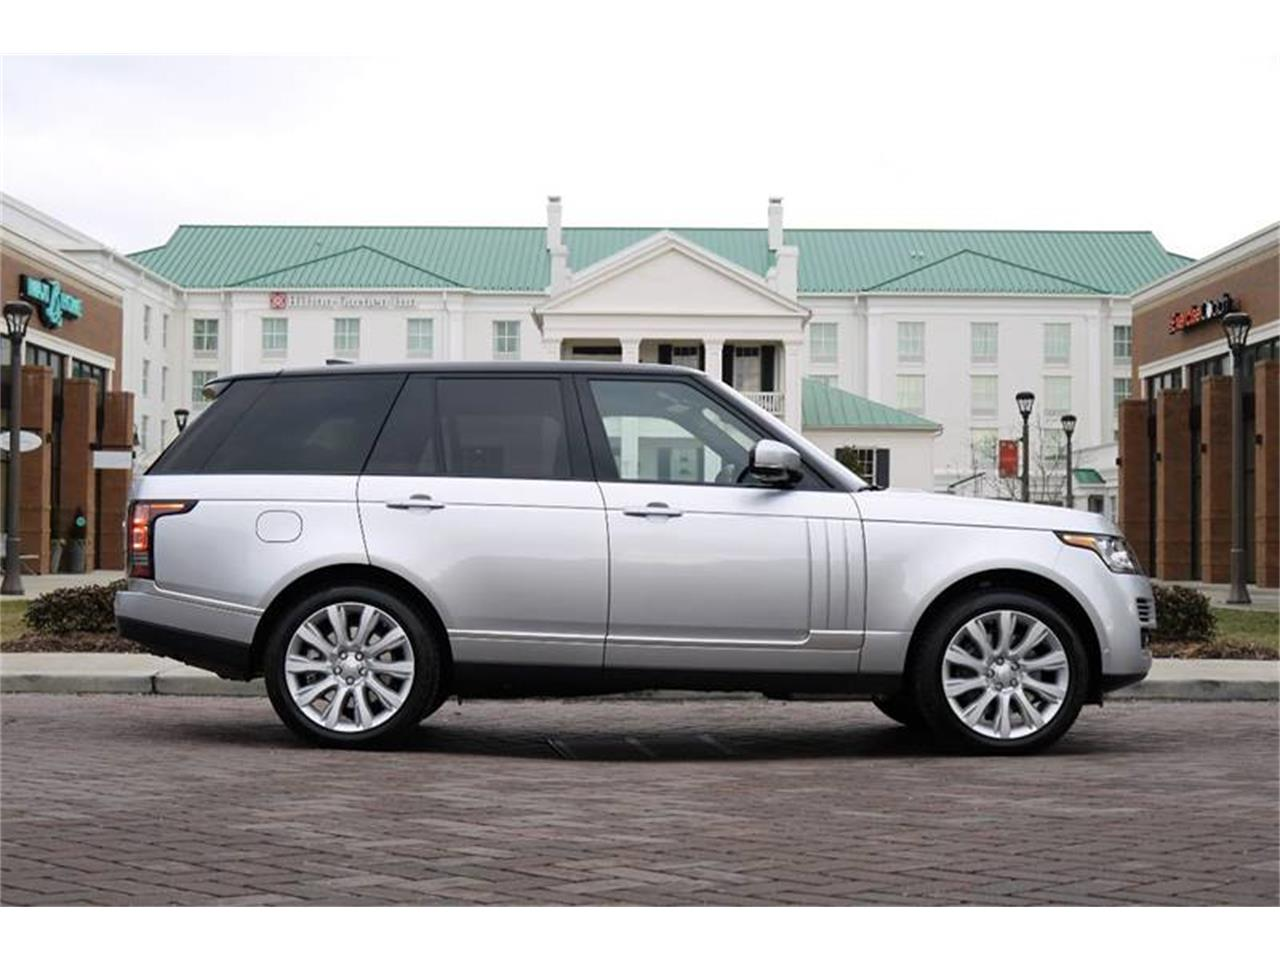 Large Picture of '17 Land Rover Range Rover located in Brentwood Tennessee Auction Vehicle Offered by Arde Motorcars - MODC